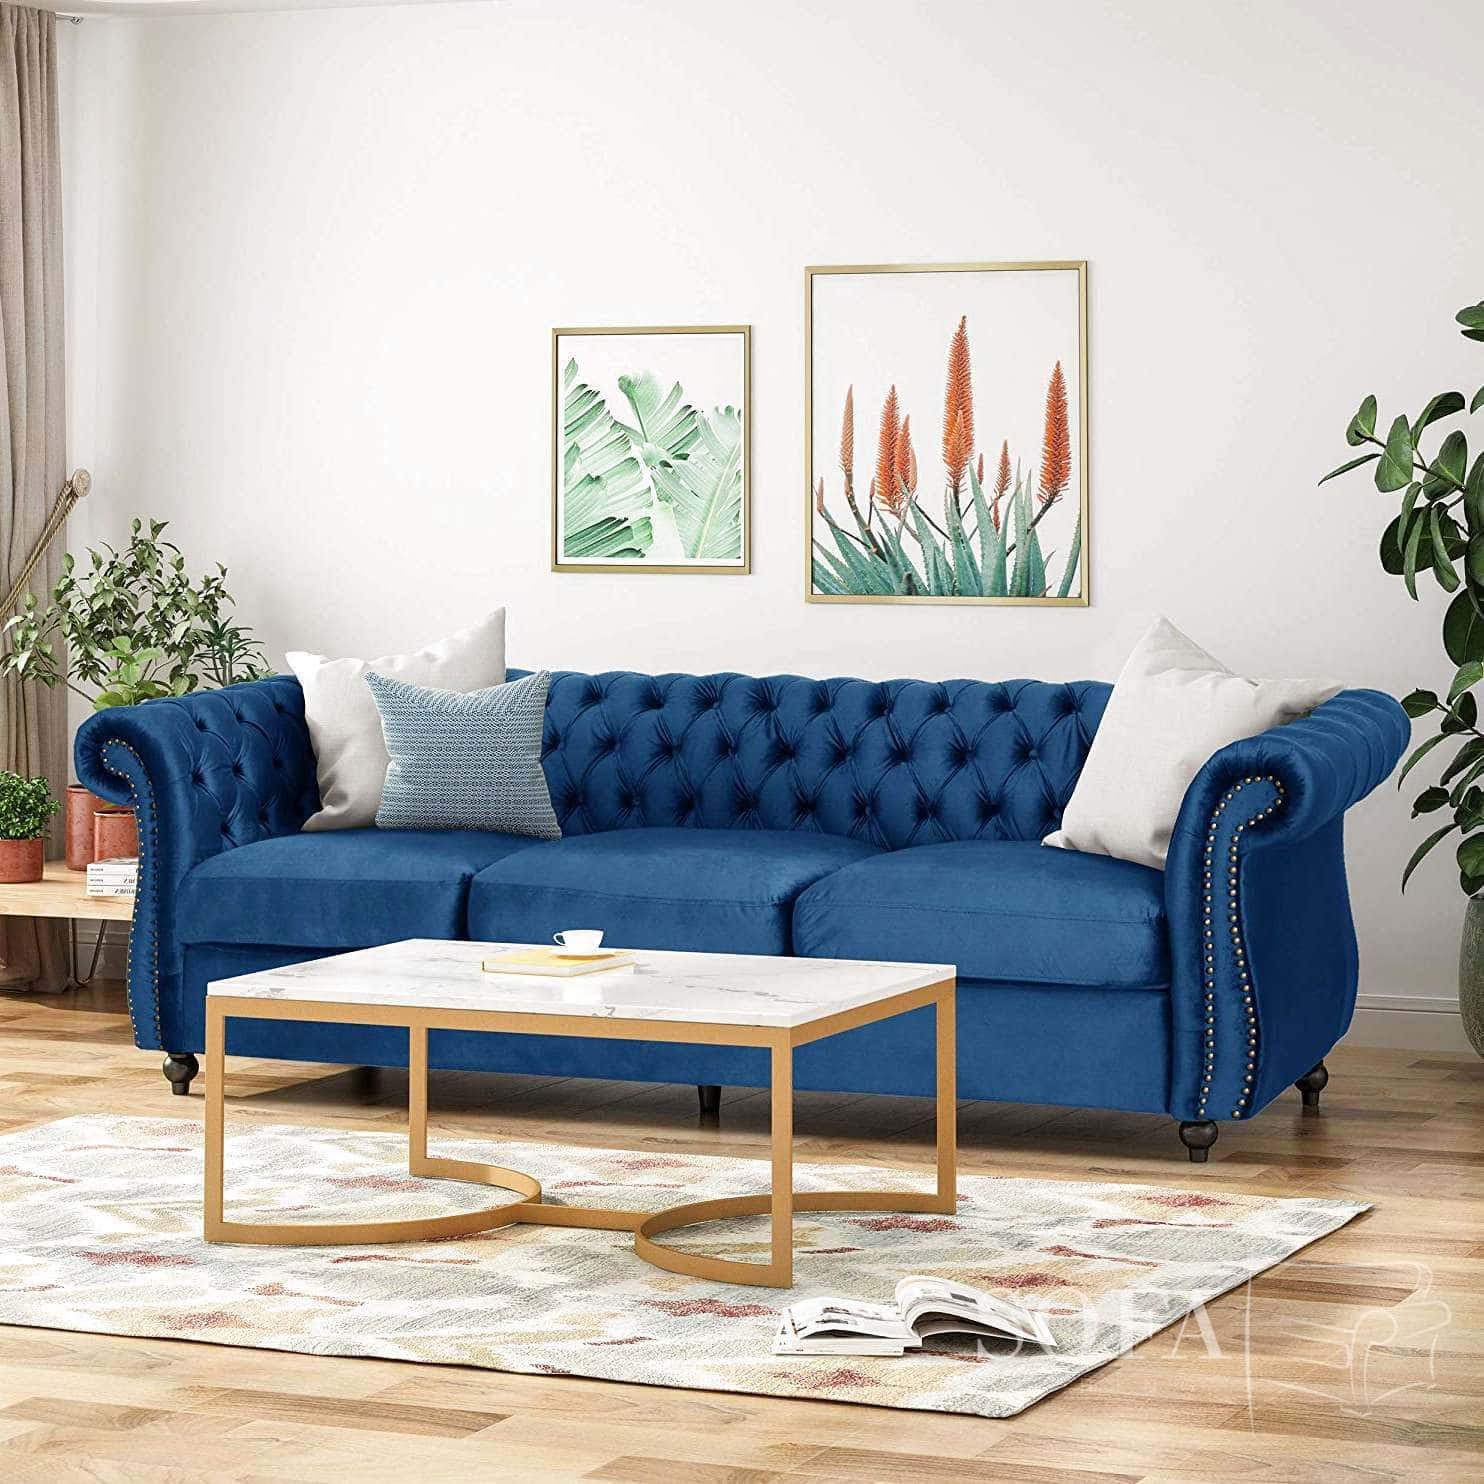 Best Dark Blue Sofas Our Top 5 High Quality Blue Sofas